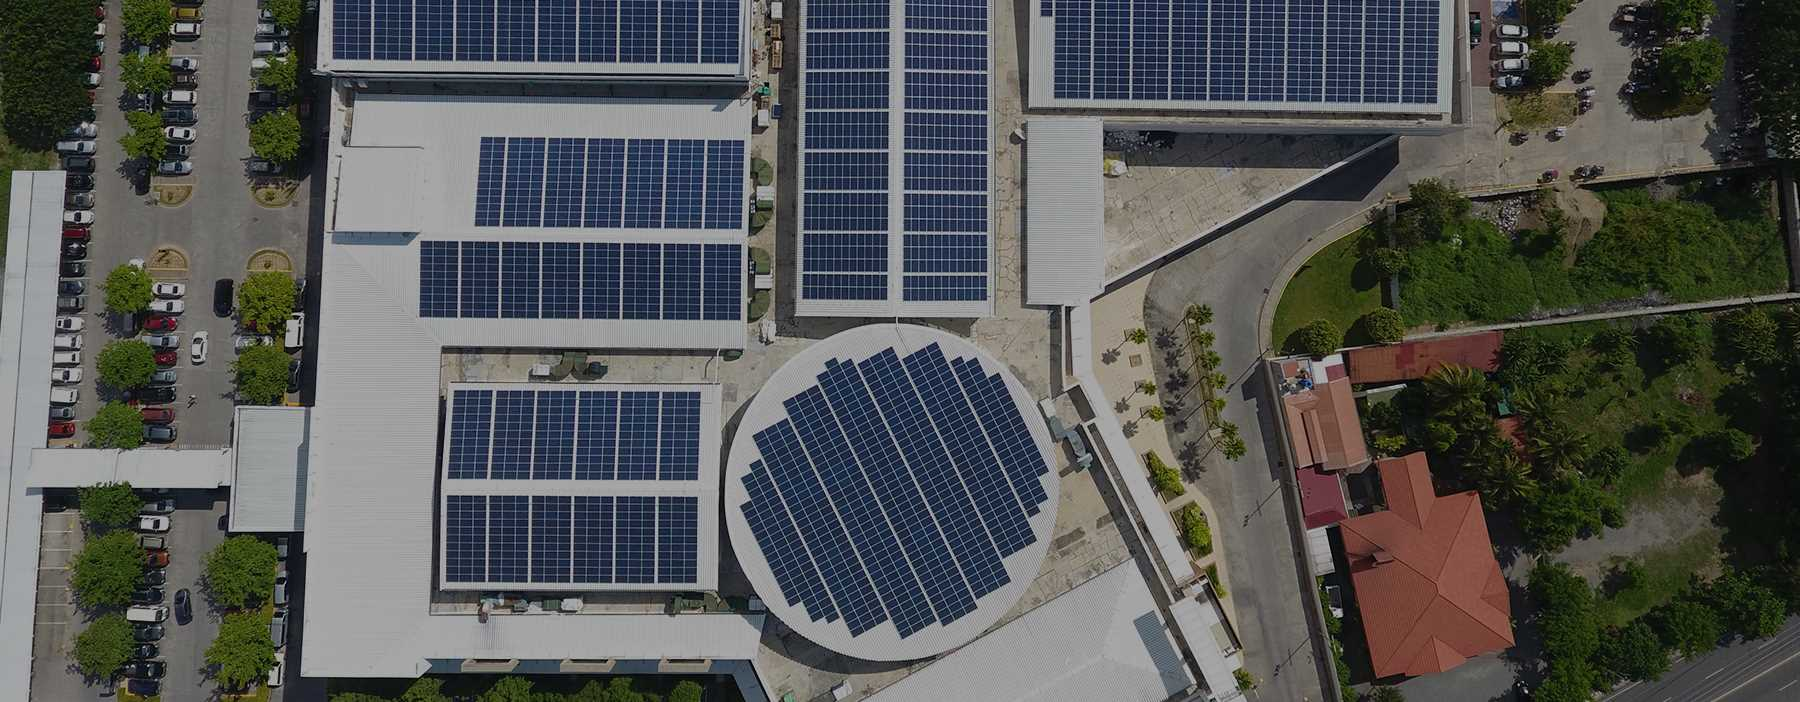 Best Commercial Solar Power System